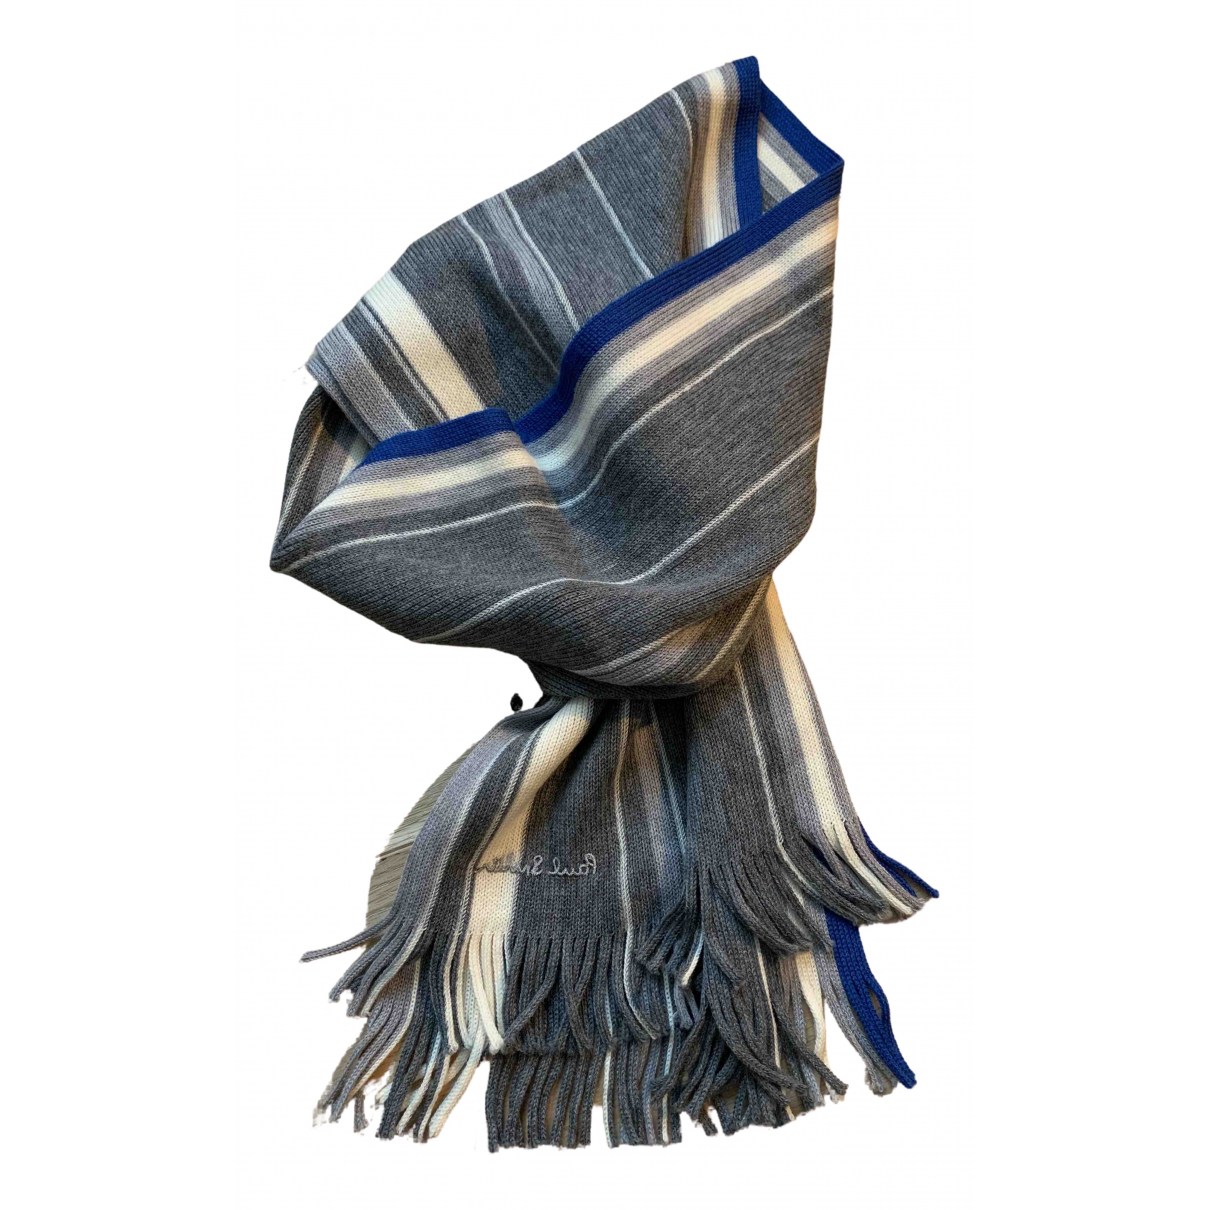 Paul Smith N Grey Wool scarf & pocket squares for Men N